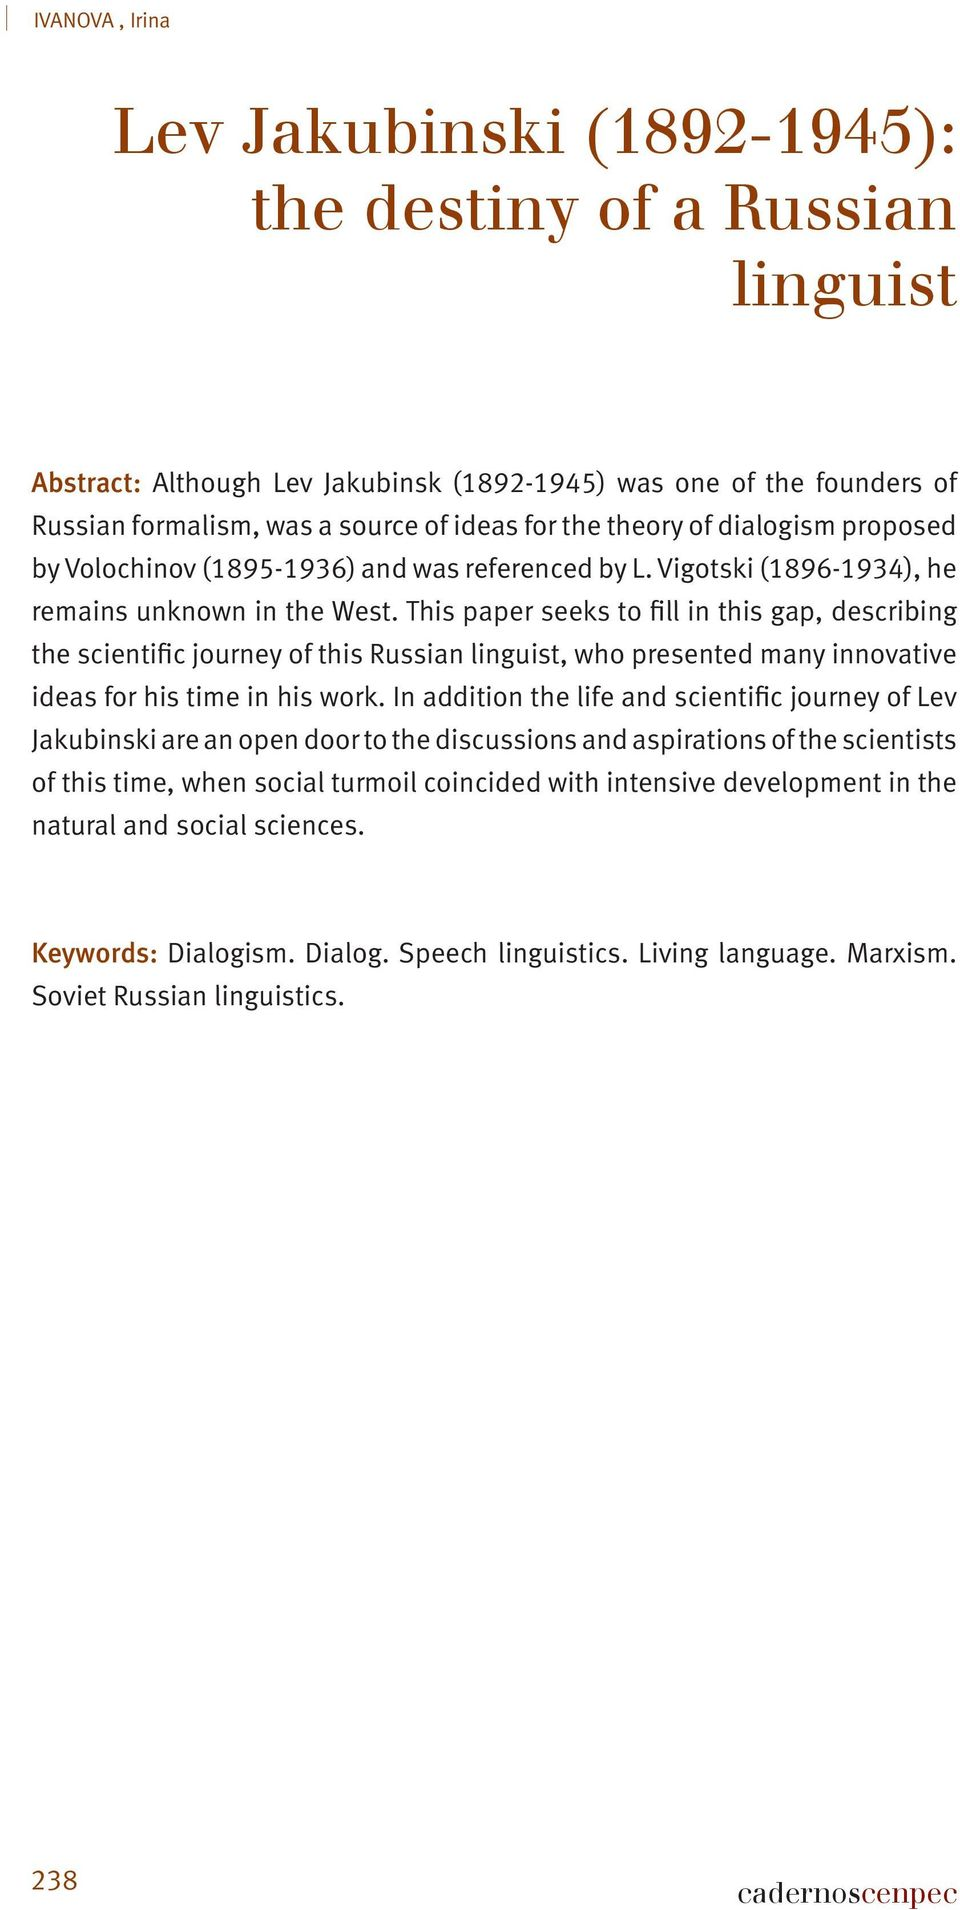 This paper seeks to fill in this gap, describing the scientific journey of this Russian linguist, who presented many innovative ideas for his time in his work.